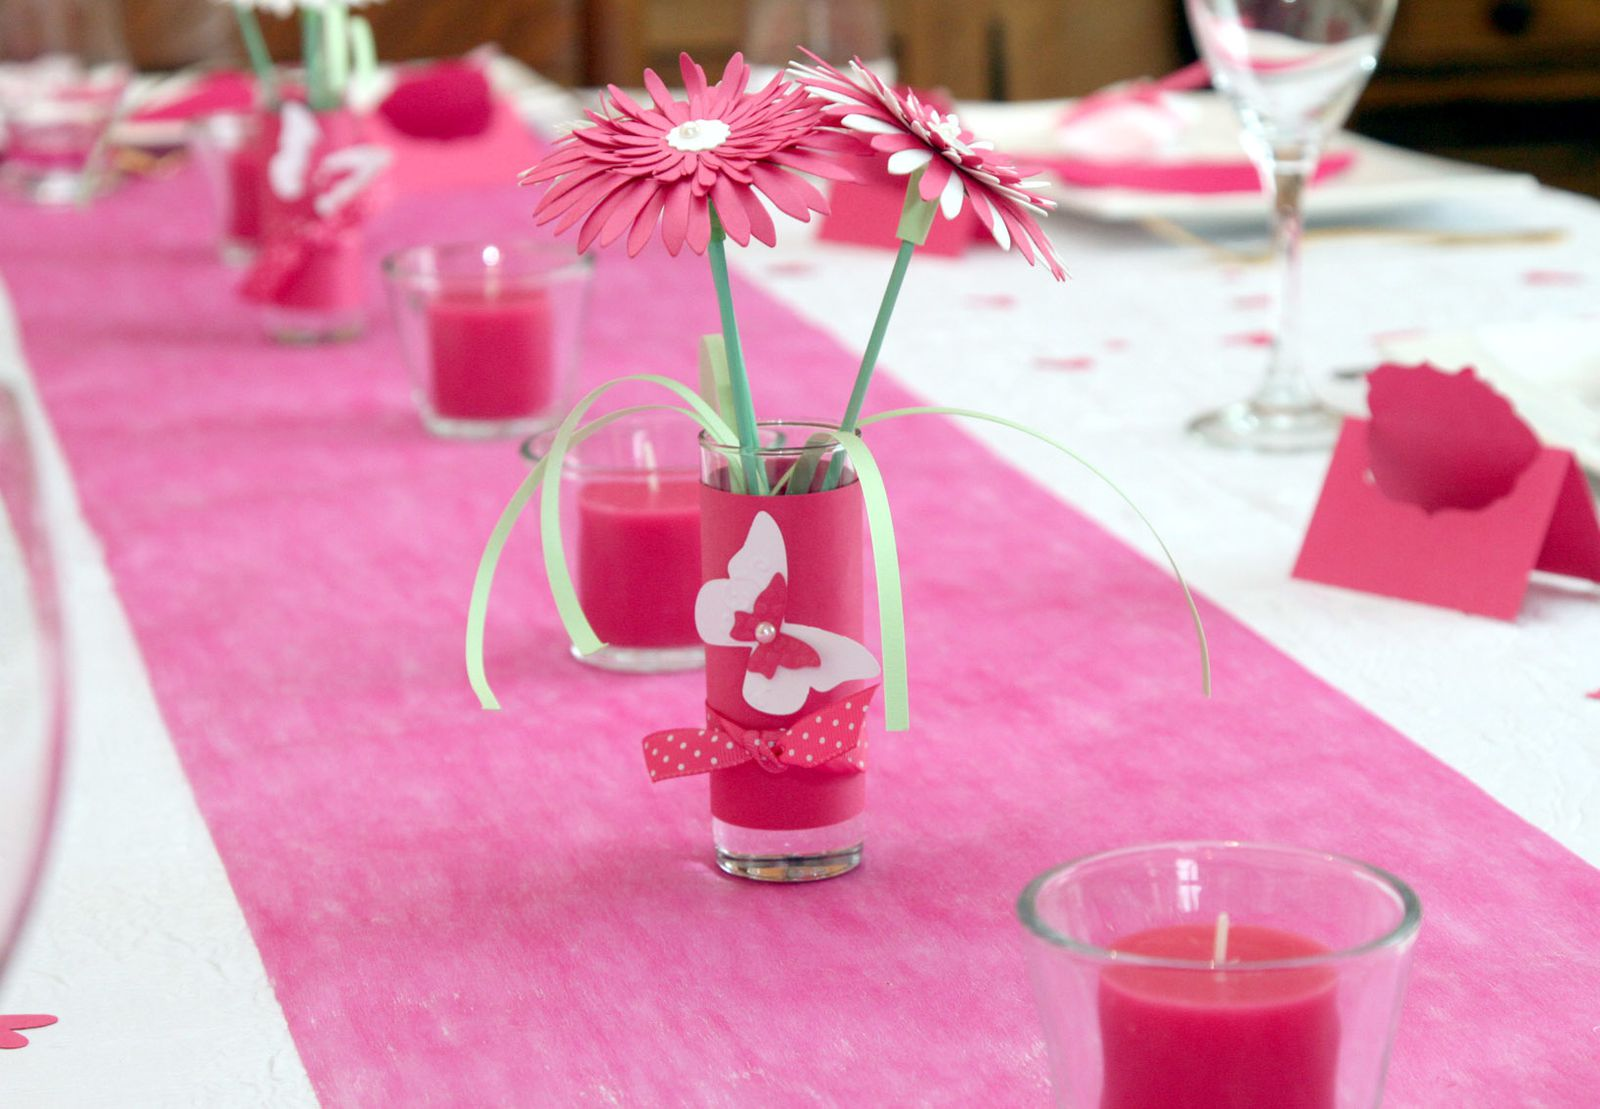 Album Deco De Table Le Blog De Vanou